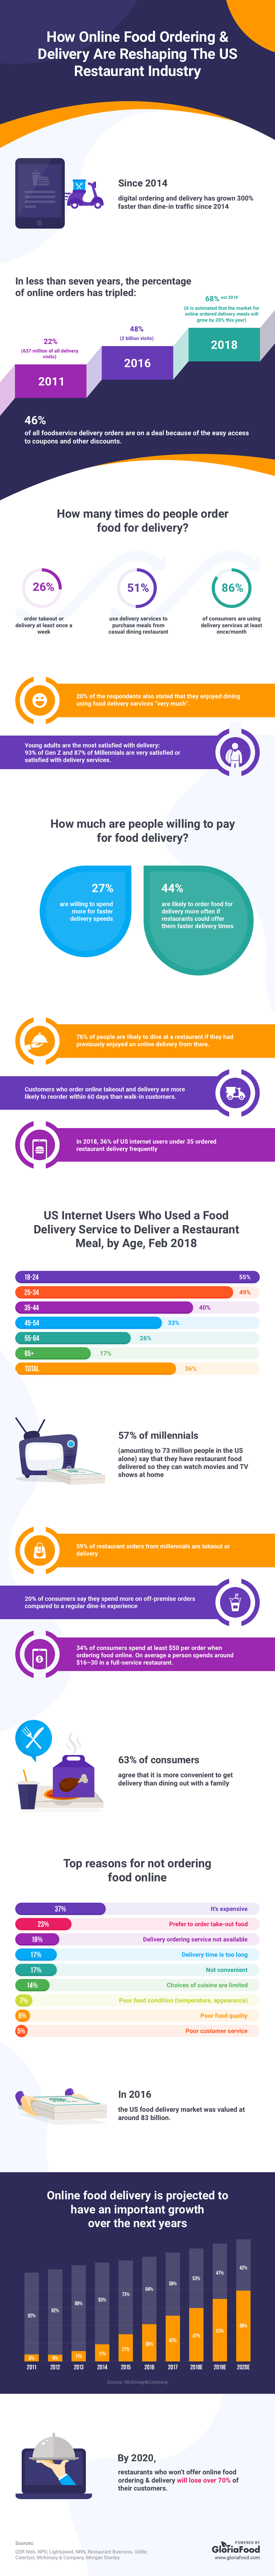 Online Food Delivery Statistics [Infographic] | GloriaFood Blog